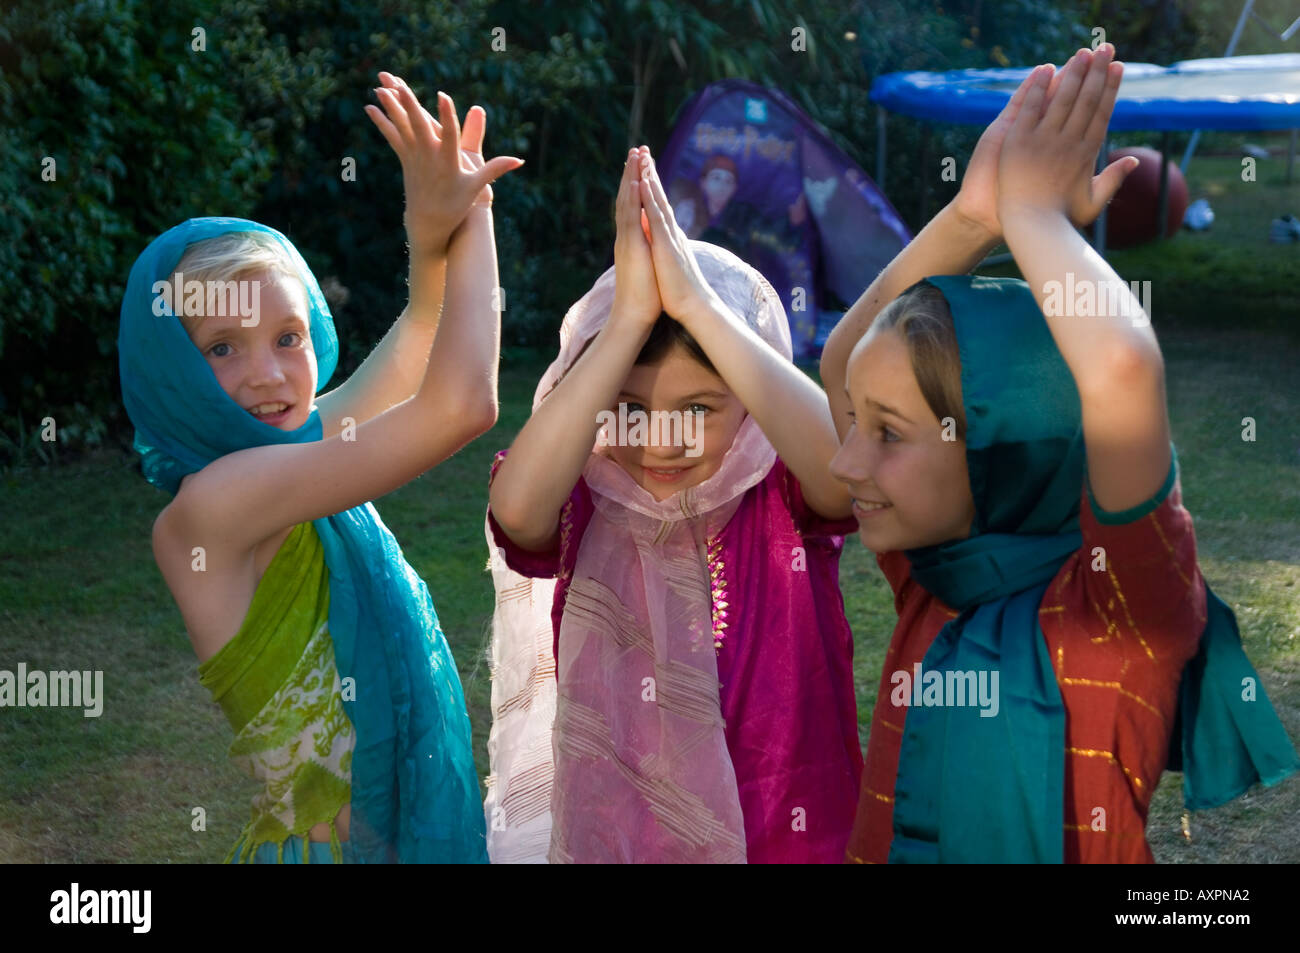 3 girls at play pretending to be indian princesses - Stock Image